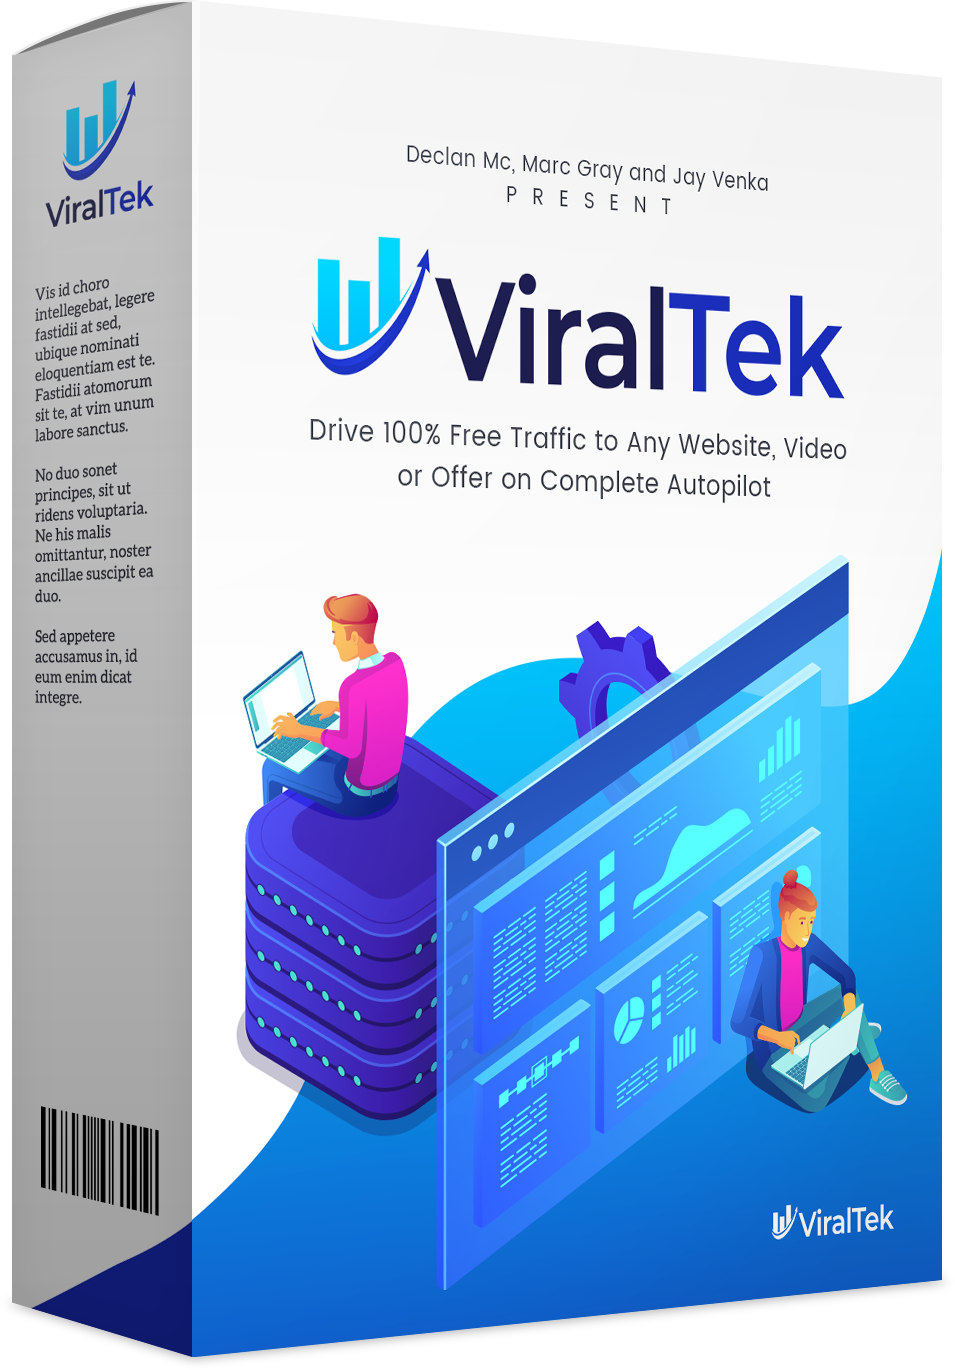 ViralTek Review